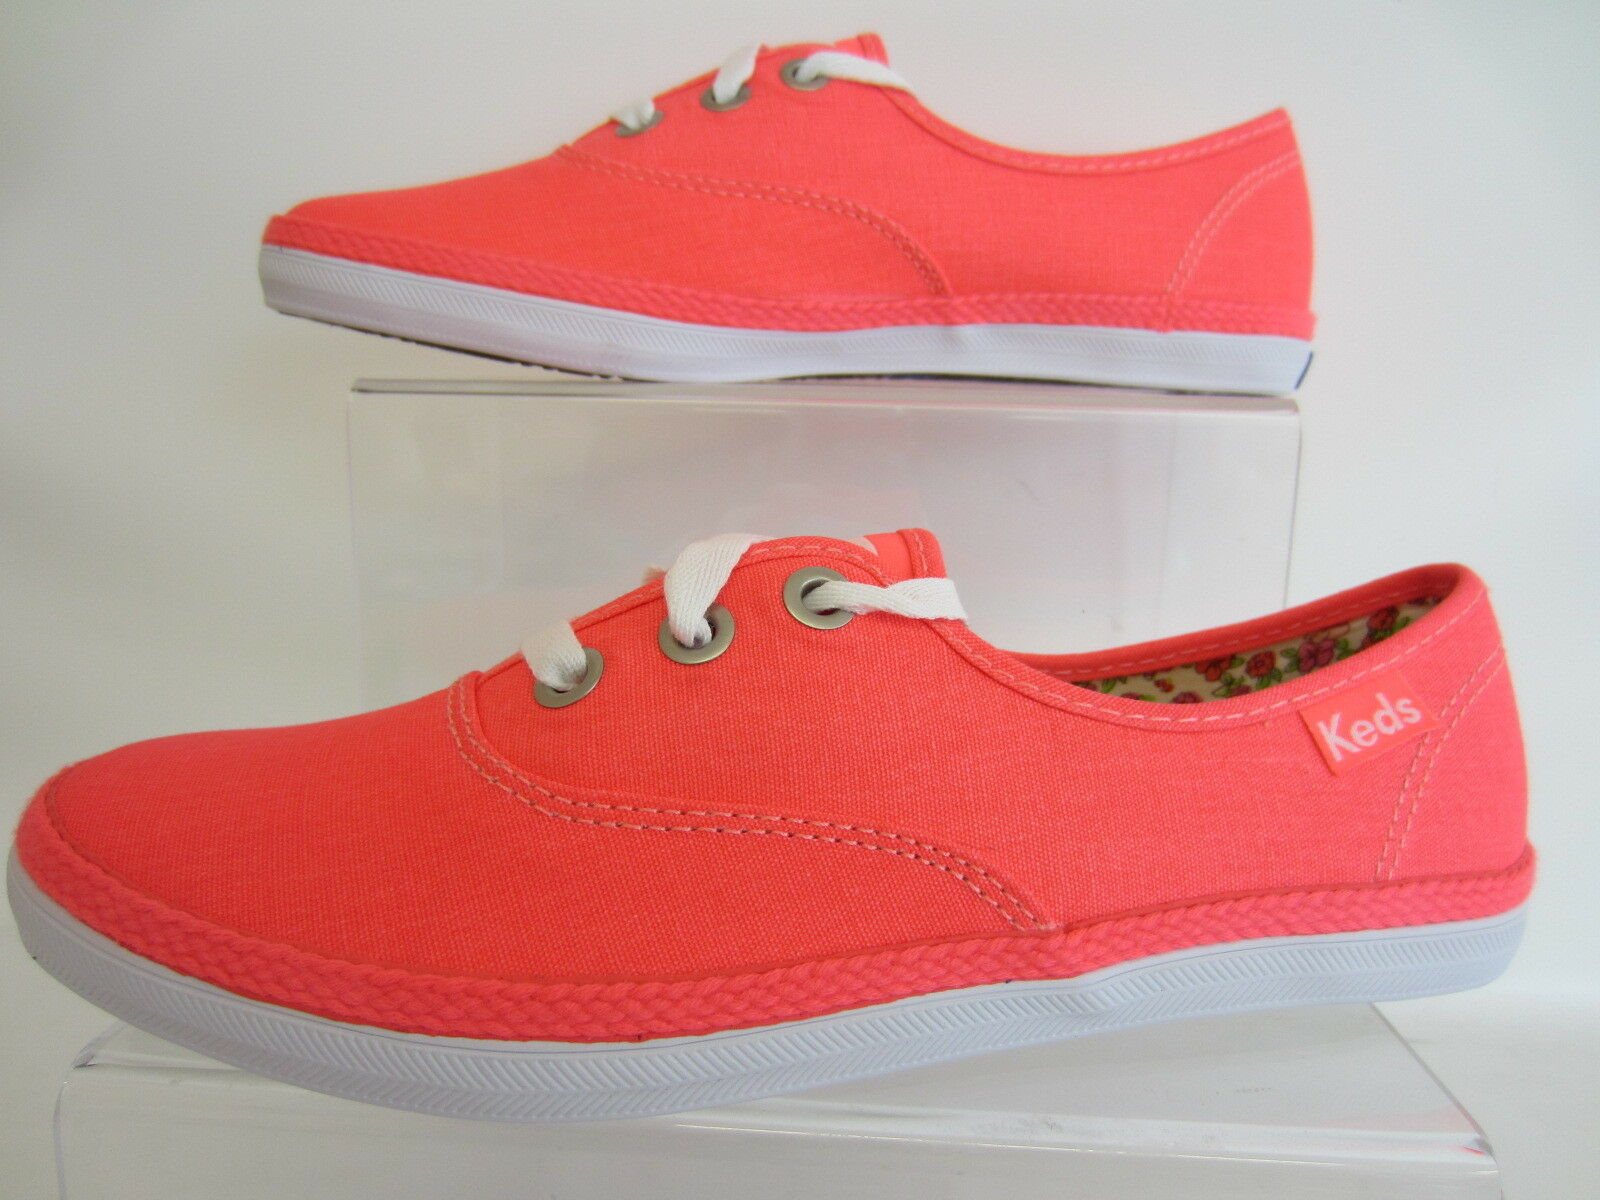 Keds WF46417 Plimsoles Rookie Neon Coral Ladies Plimsoles WF46417 UK Sizes 3.5 to 4.5 (R43B) ee02aa